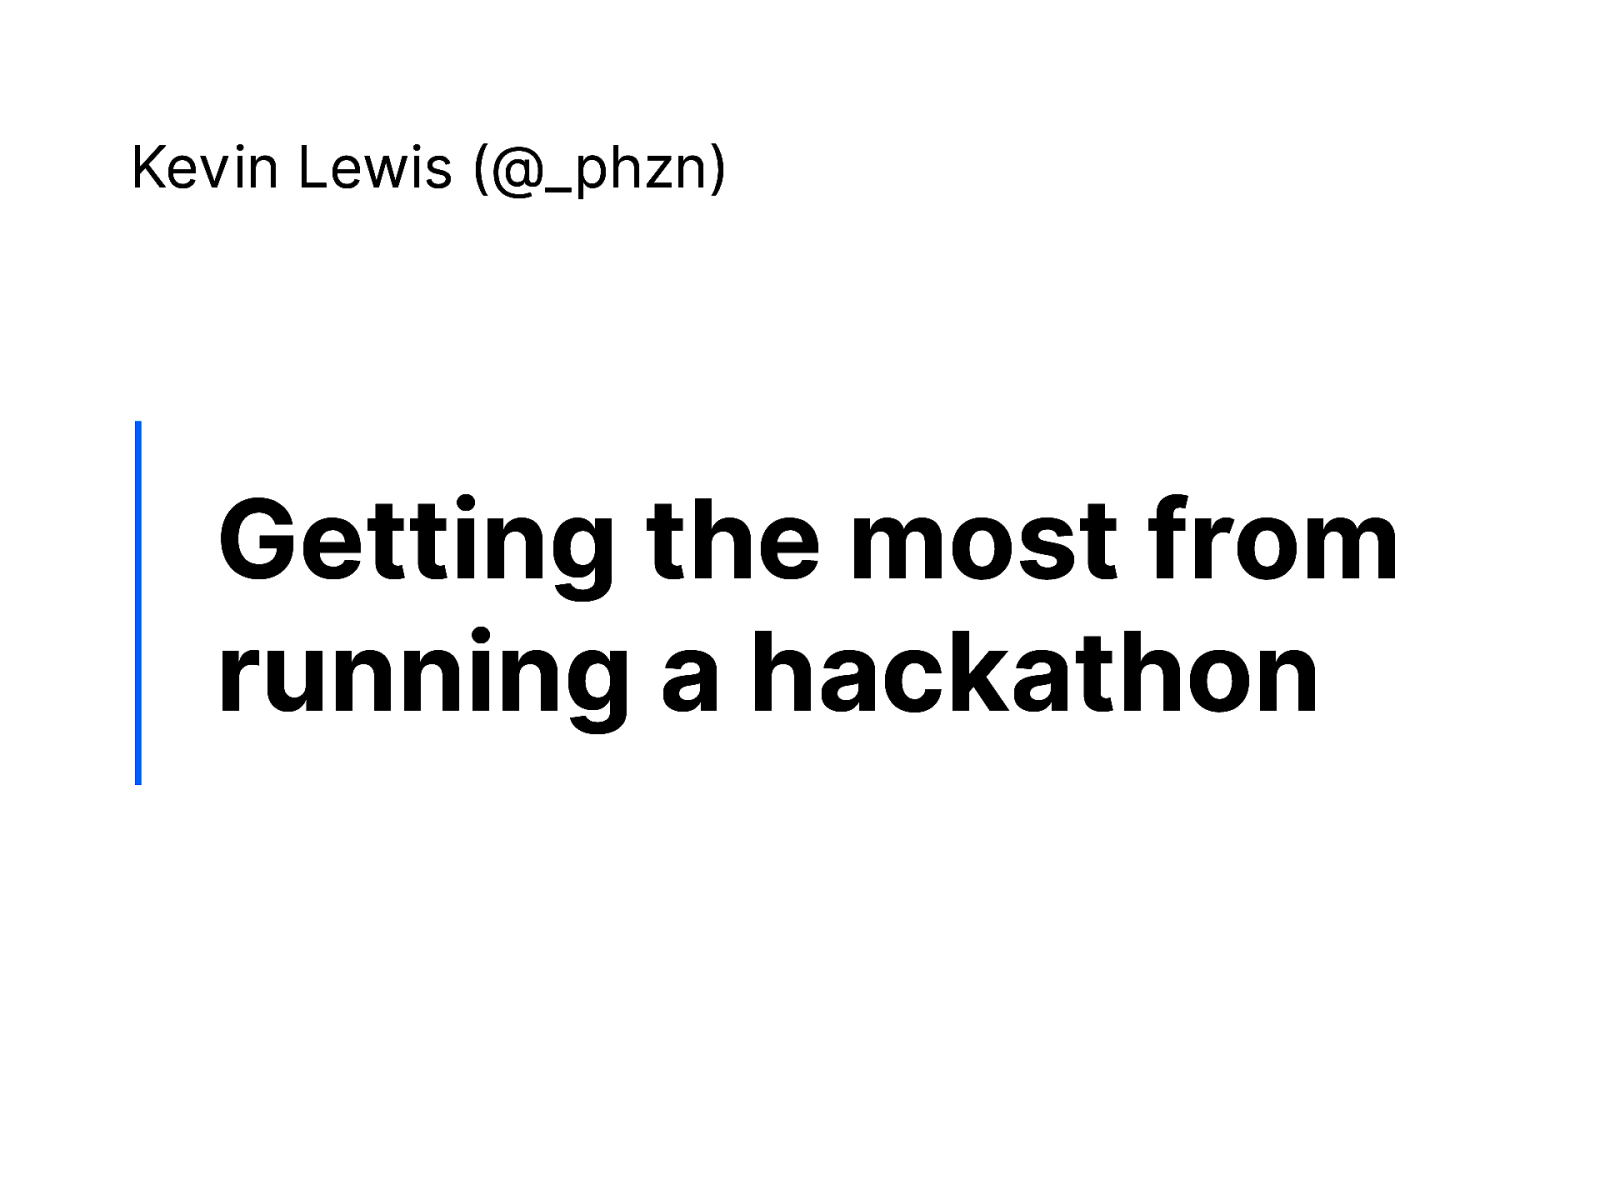 Getting the most from running a hackathon